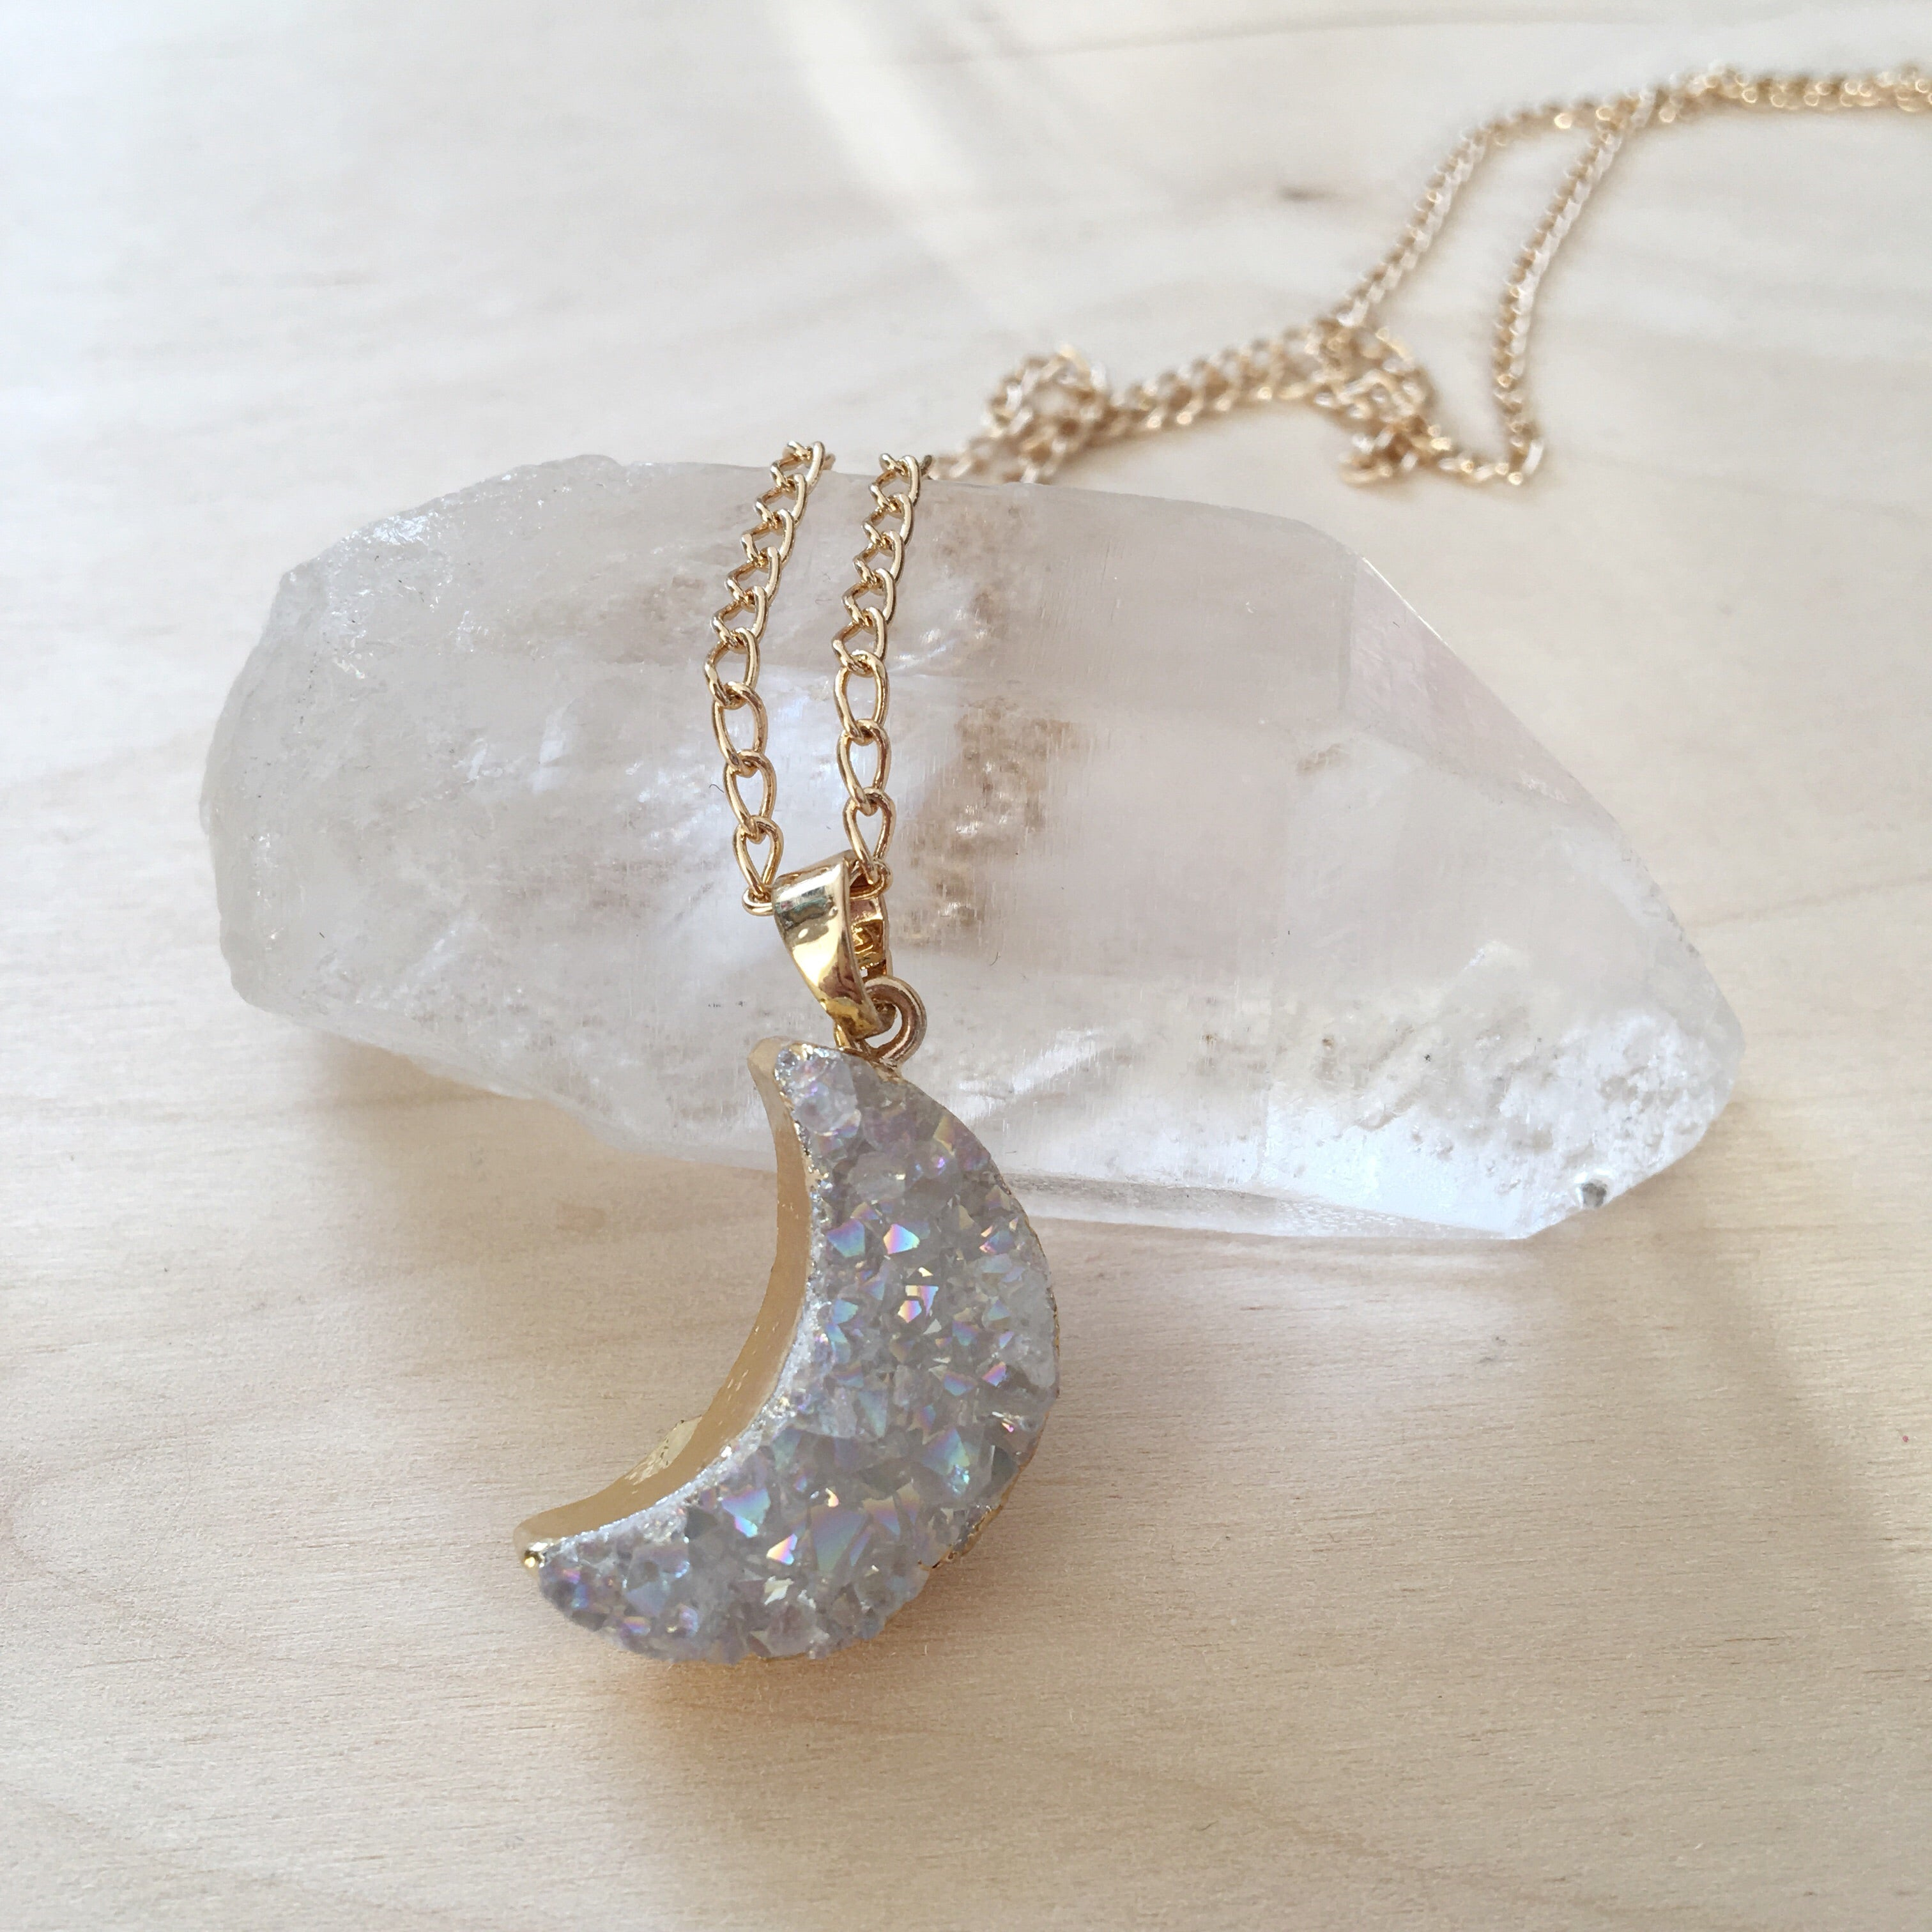 ANGEL AURA CRESCENT MOON PENDANT